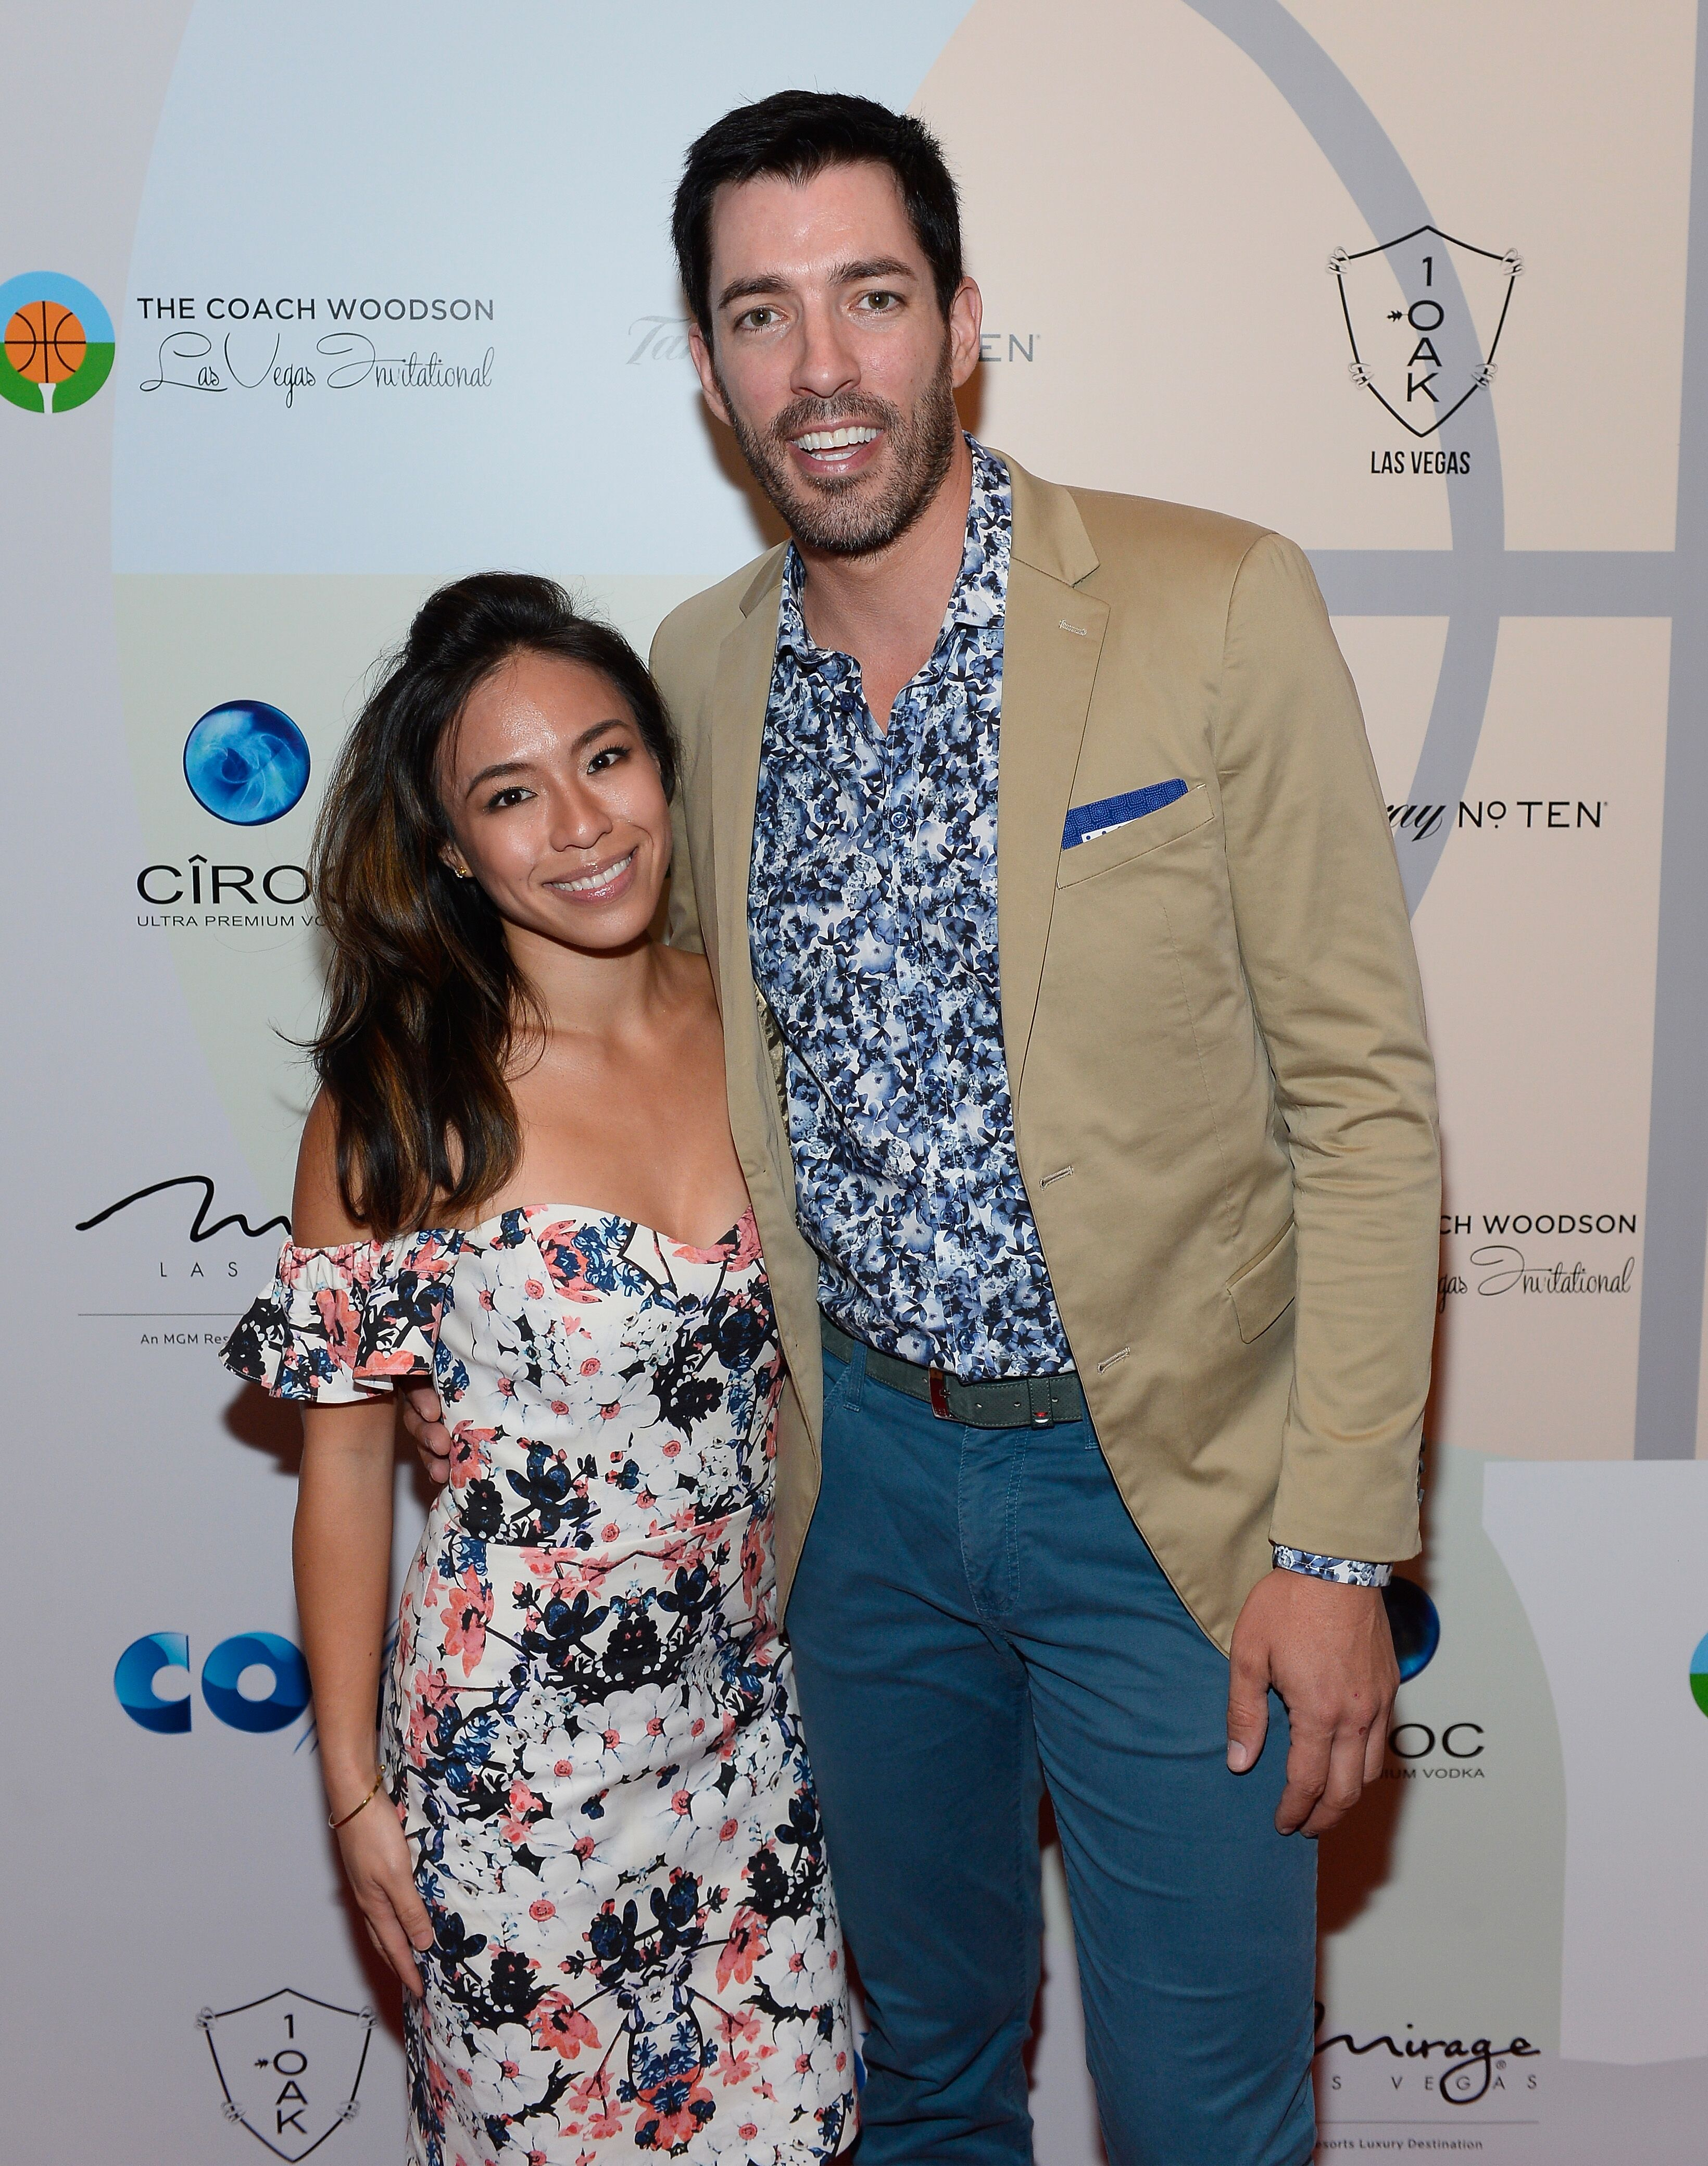 Linda Phan and television personality Drew Scott arrive at the Coach Woodson Las Vegas Invitational red carpet and pairings gala at 1 OAK Nightclub at The Mirage Hotel & Casino in Las Vegas, Nevada | Photo: Getty Images